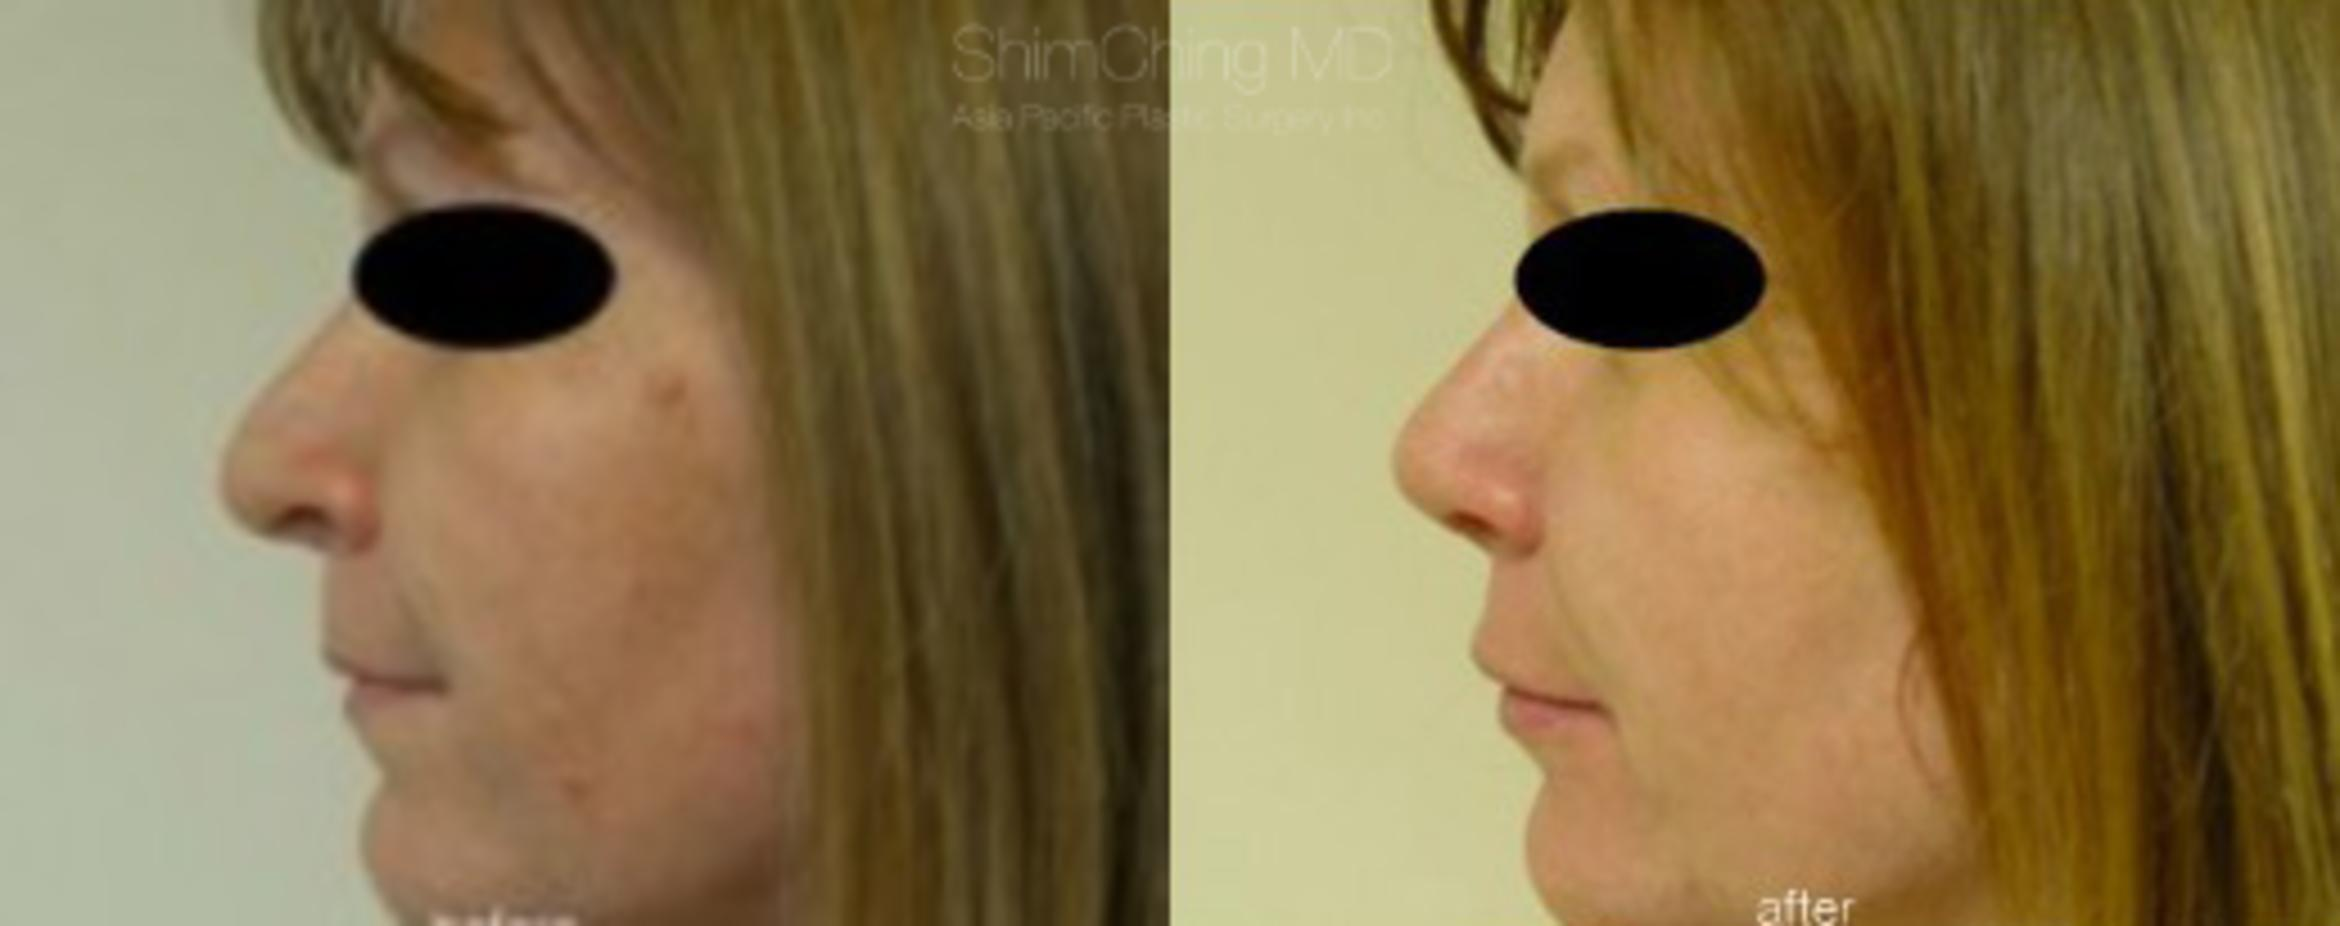 Facial Cosmetic Surgery Case 193 Before & After View #1 | Honolulu, HI | Shim Ching, MD: Asia Pacific Plastic Surgery